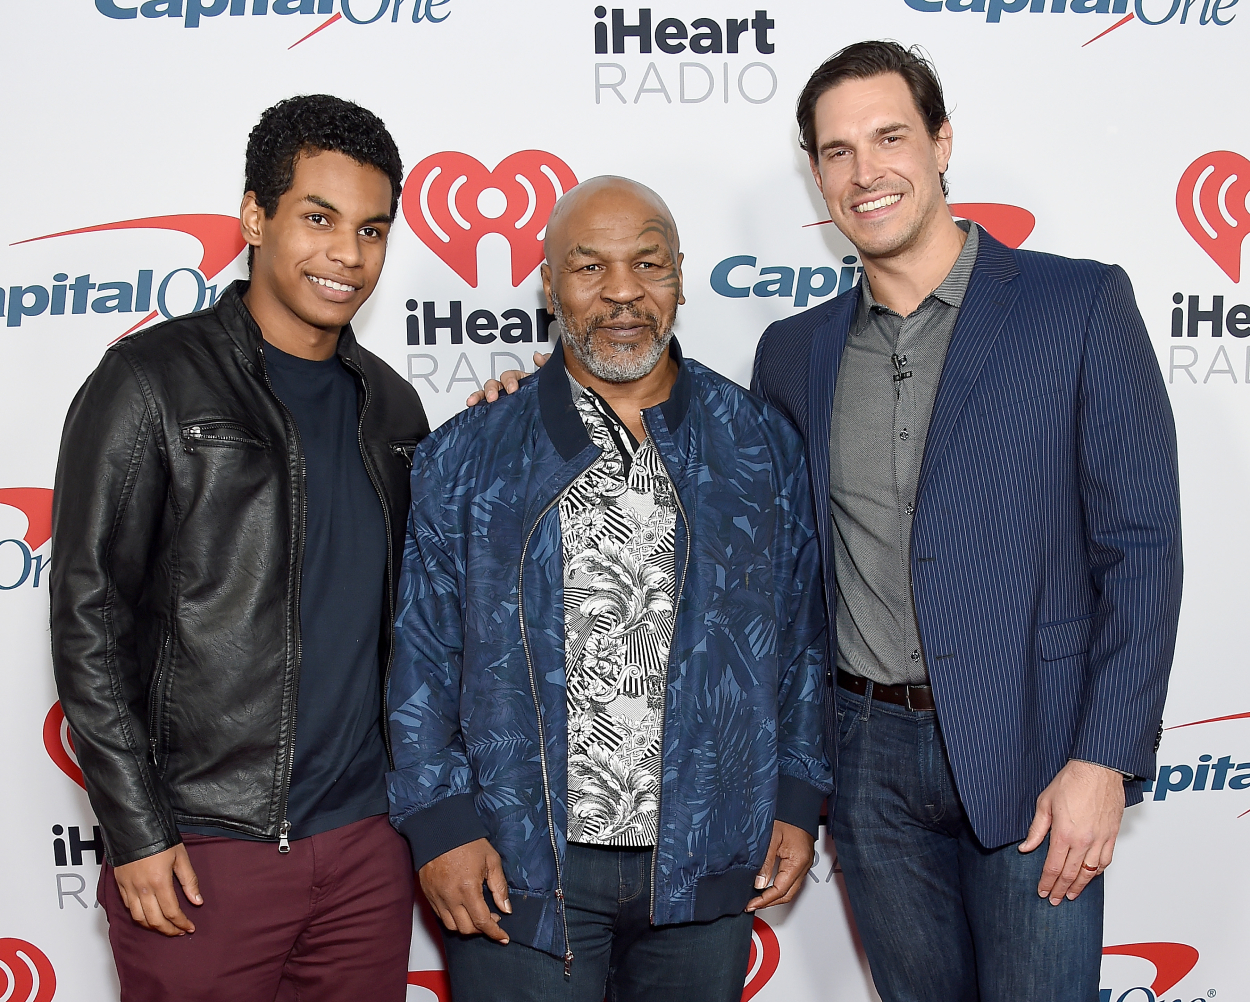 Mike Tyson's Podcast Co-Host Eben Britton on His Return: 'You Should Never Work for Free'